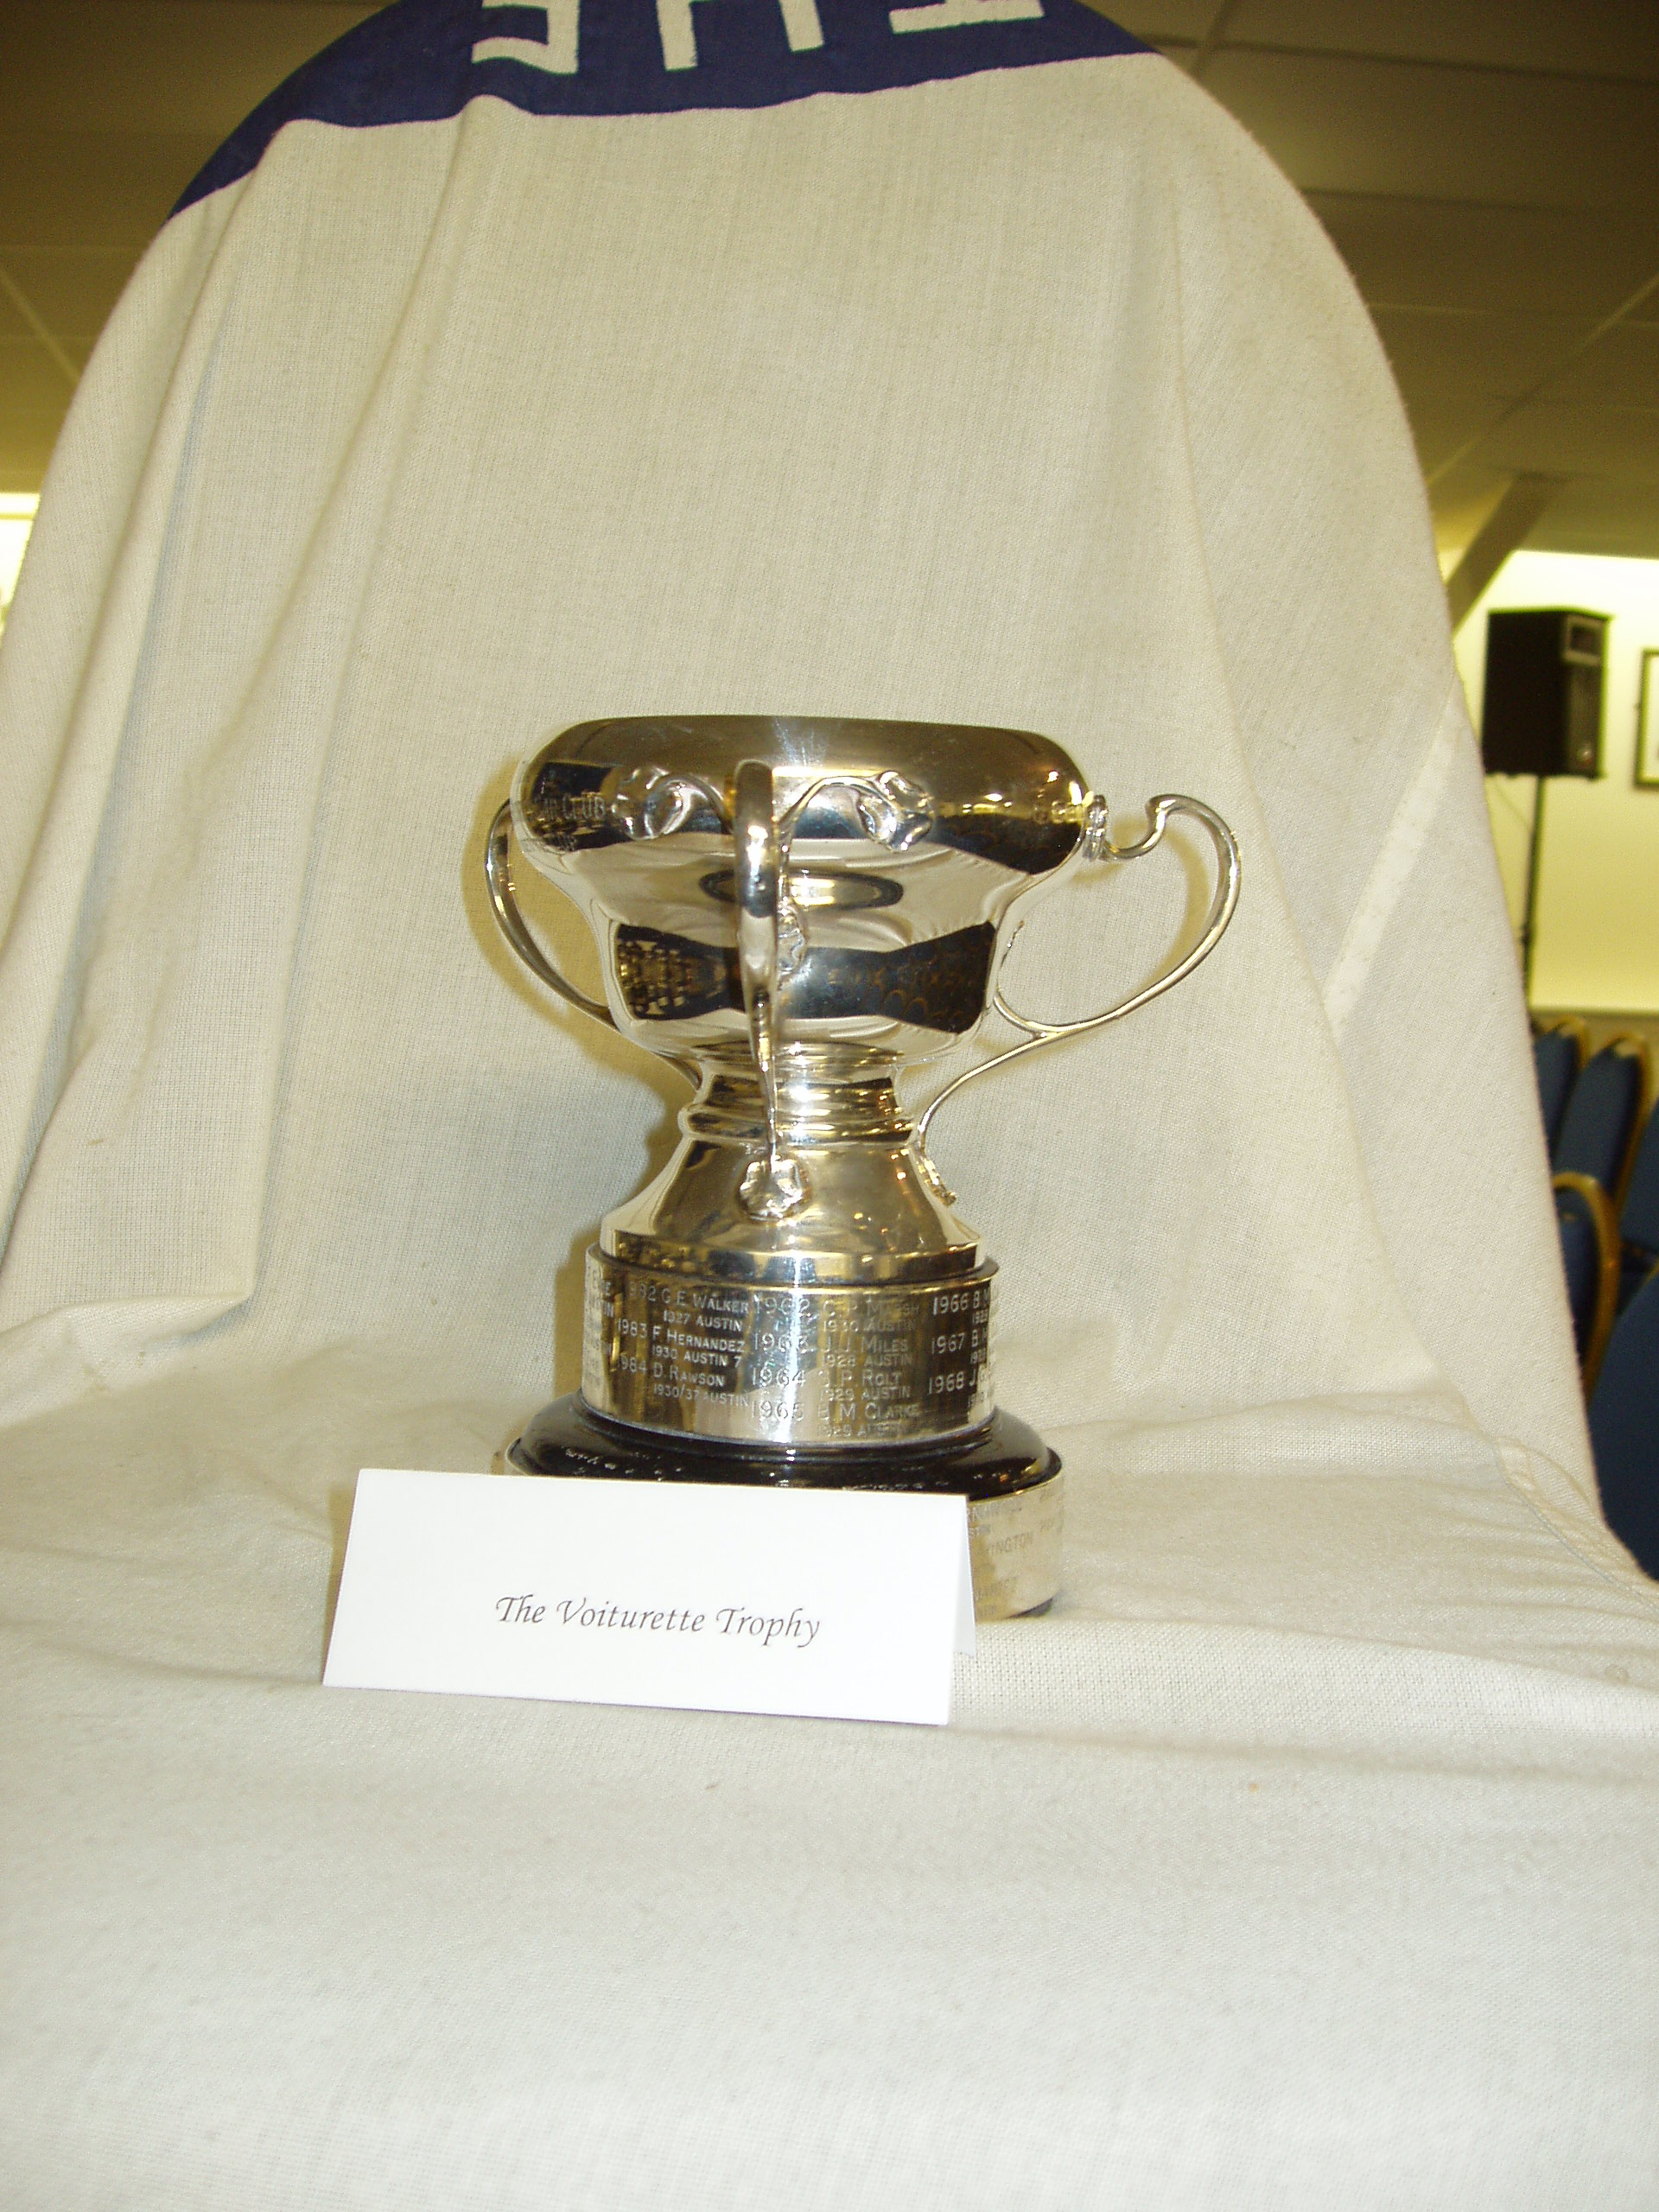 VOITURETTE TROPHY cover